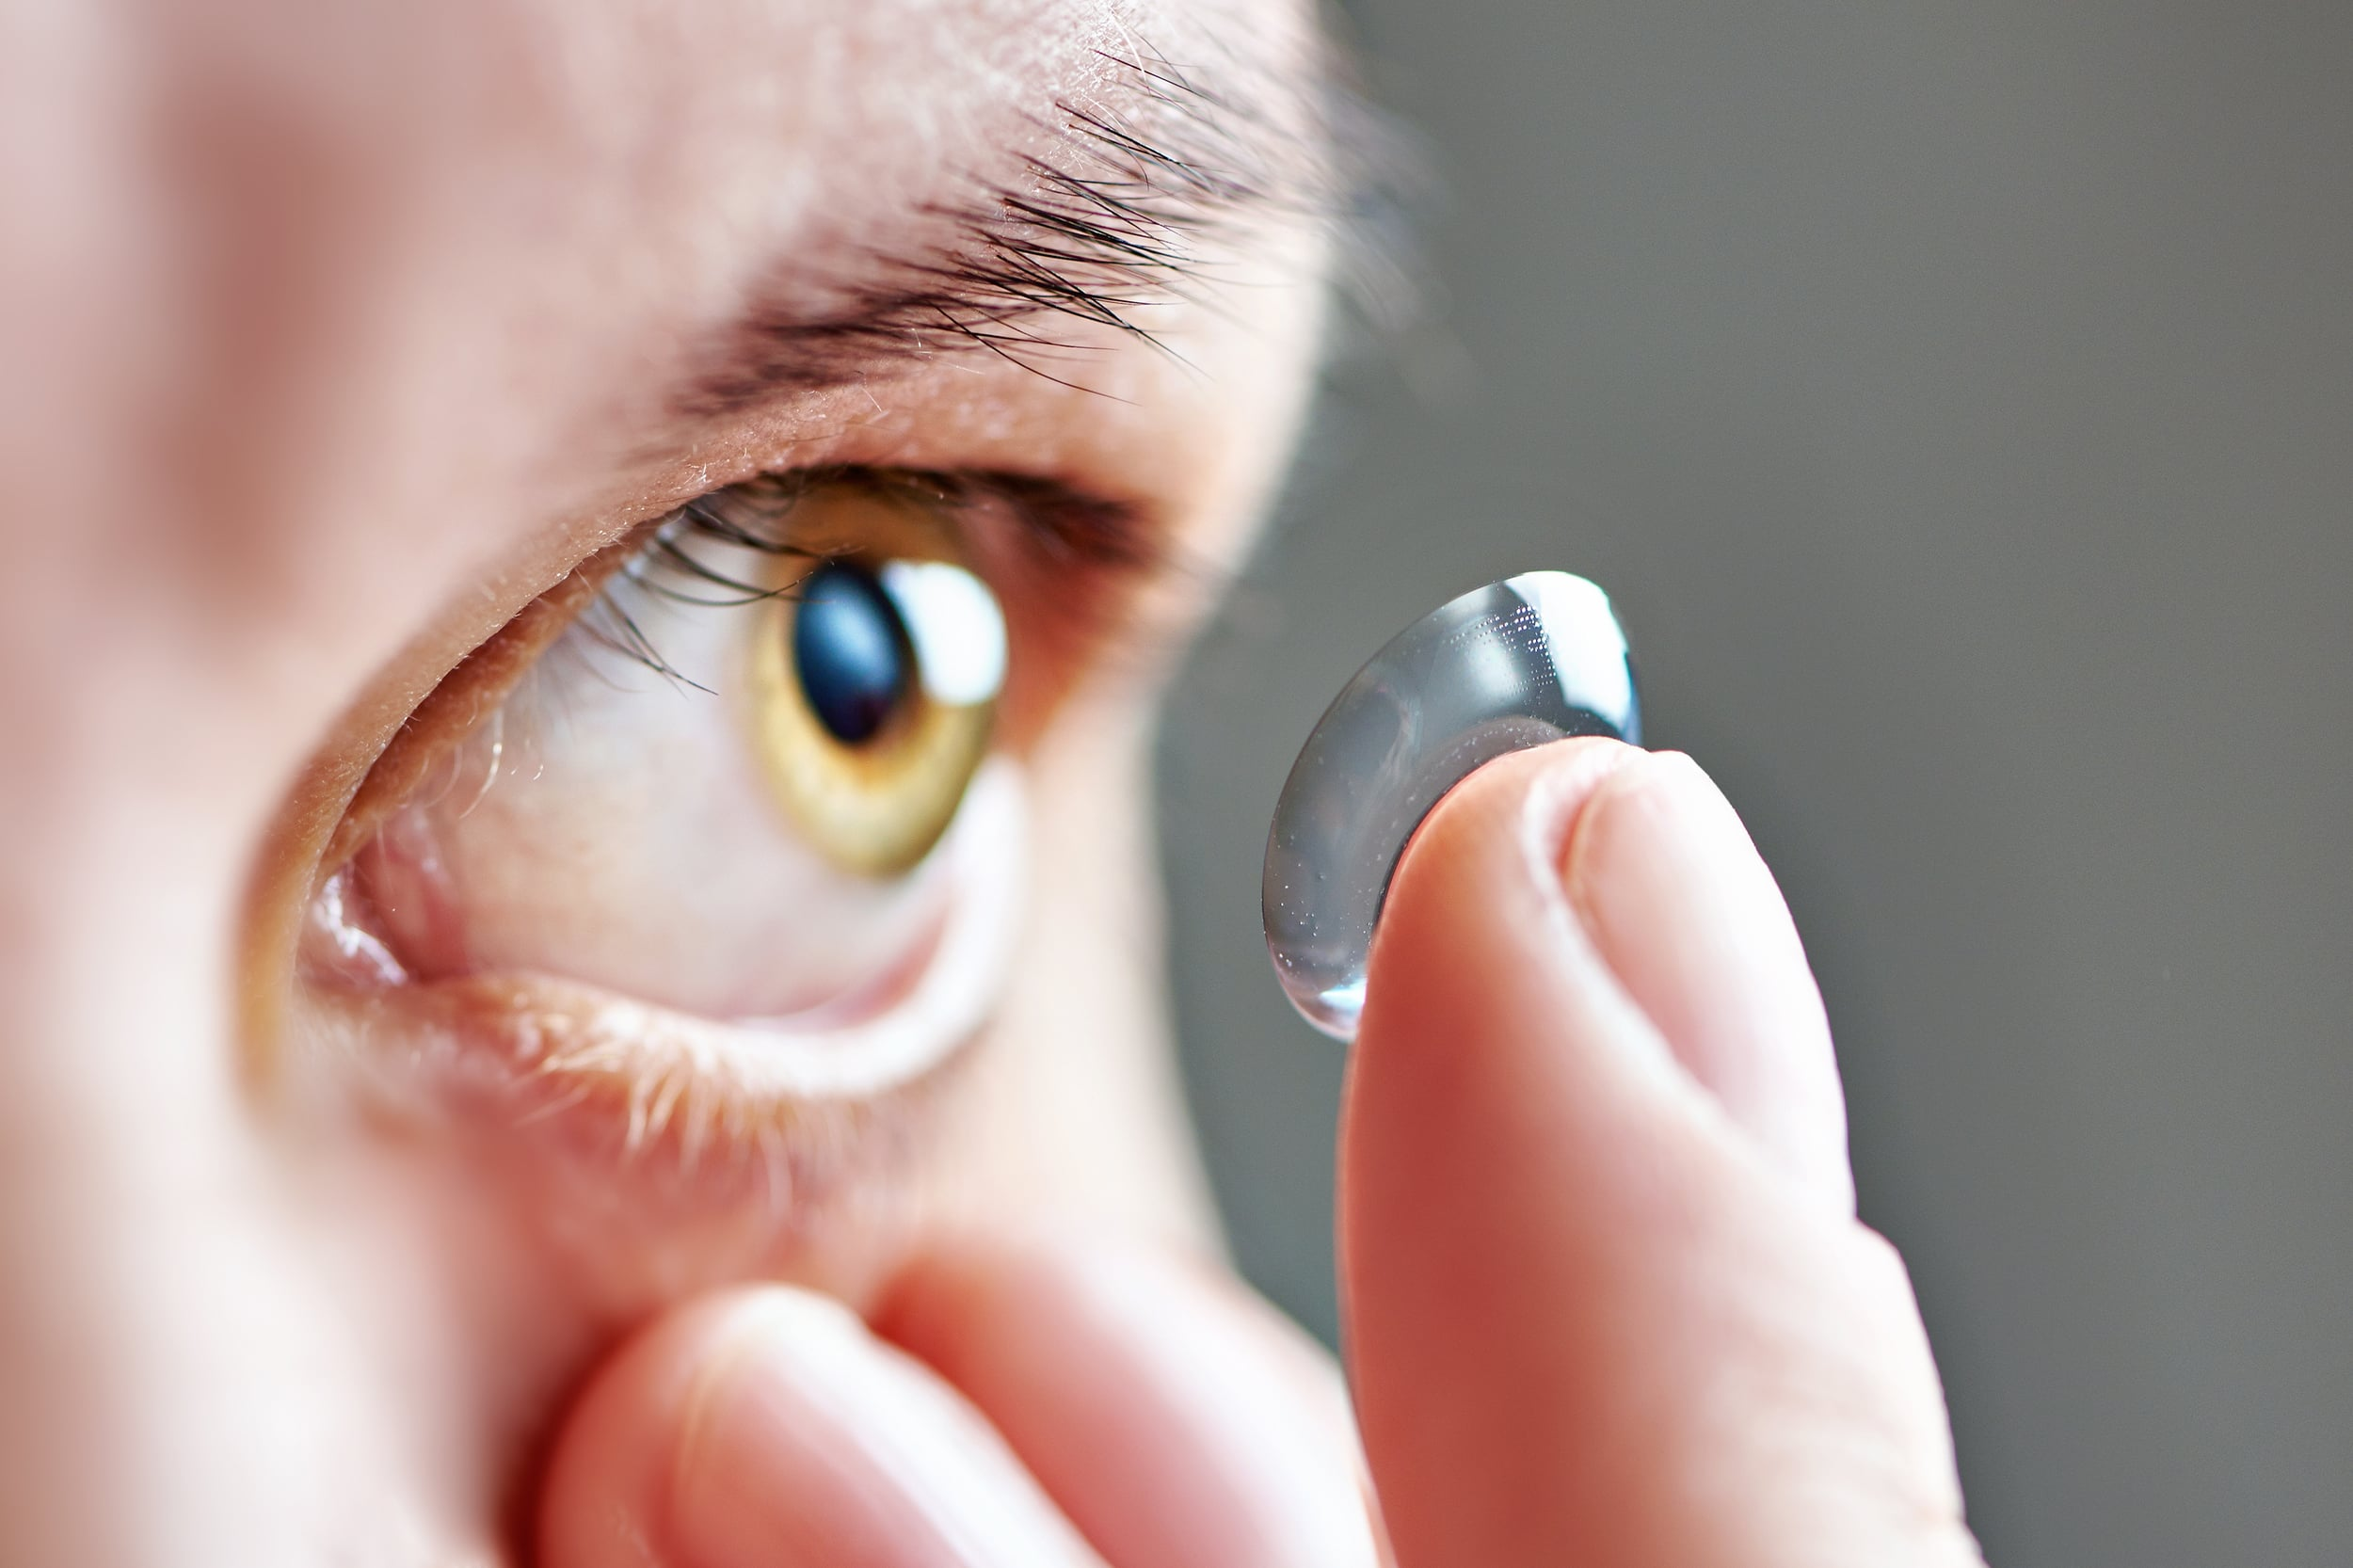 Contact lenses can be great if they're used properly. If they aren't fit properly or cared for in the right way they can be dangerous and cause permanent loss of vision.